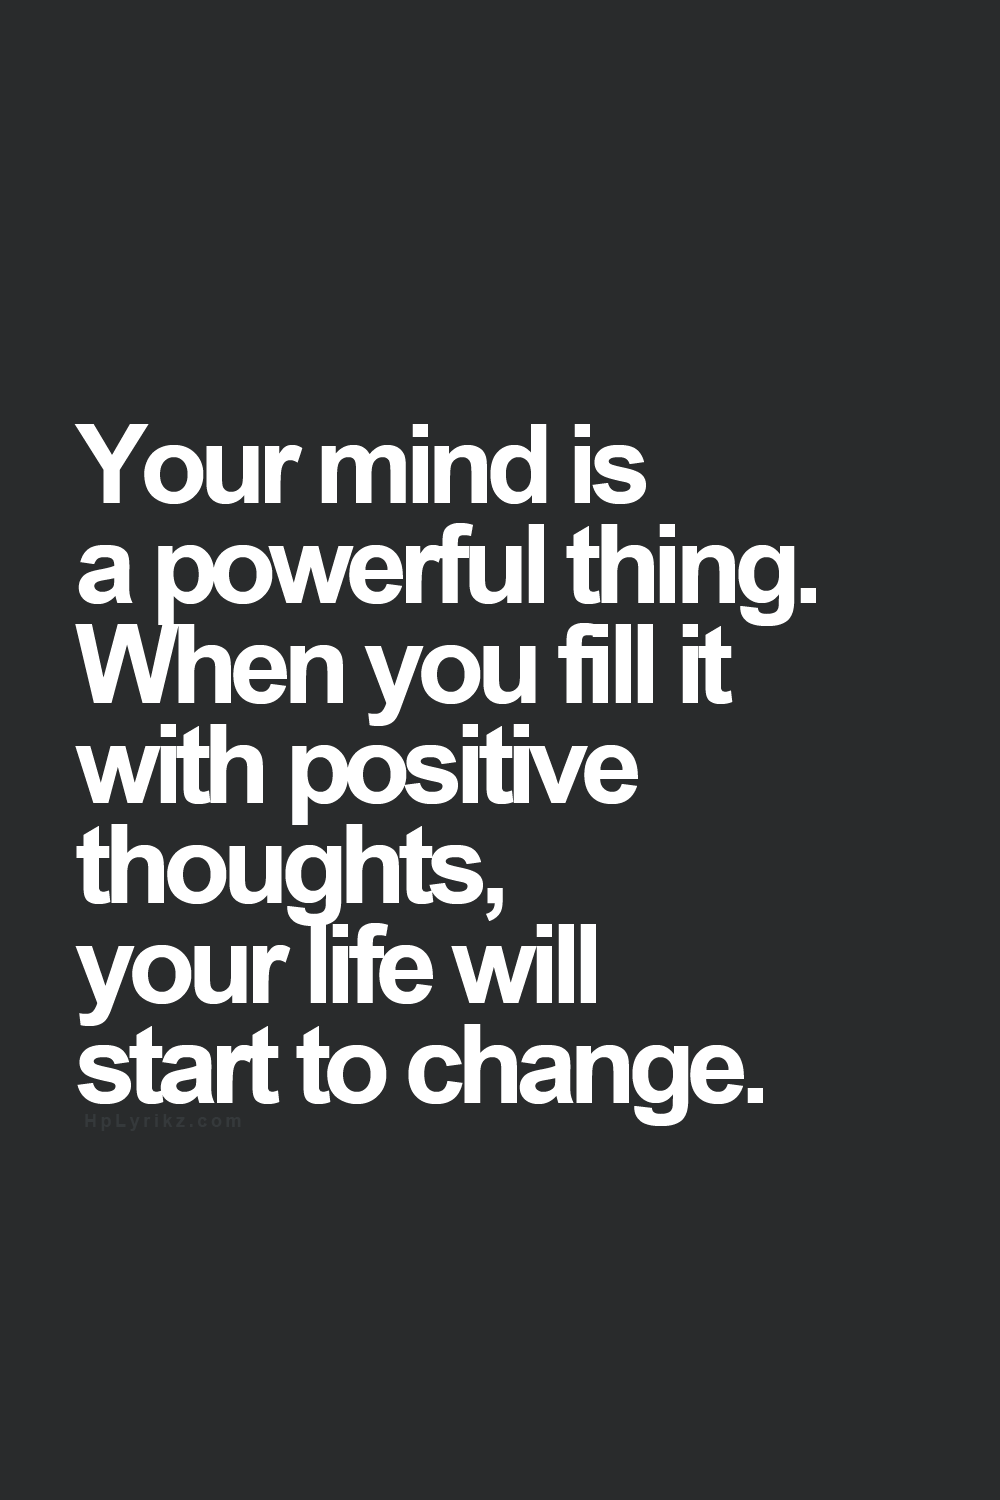 Quotes About Change In Life Your Mind Is A Powerful Thingwhen You Fill It With Positive